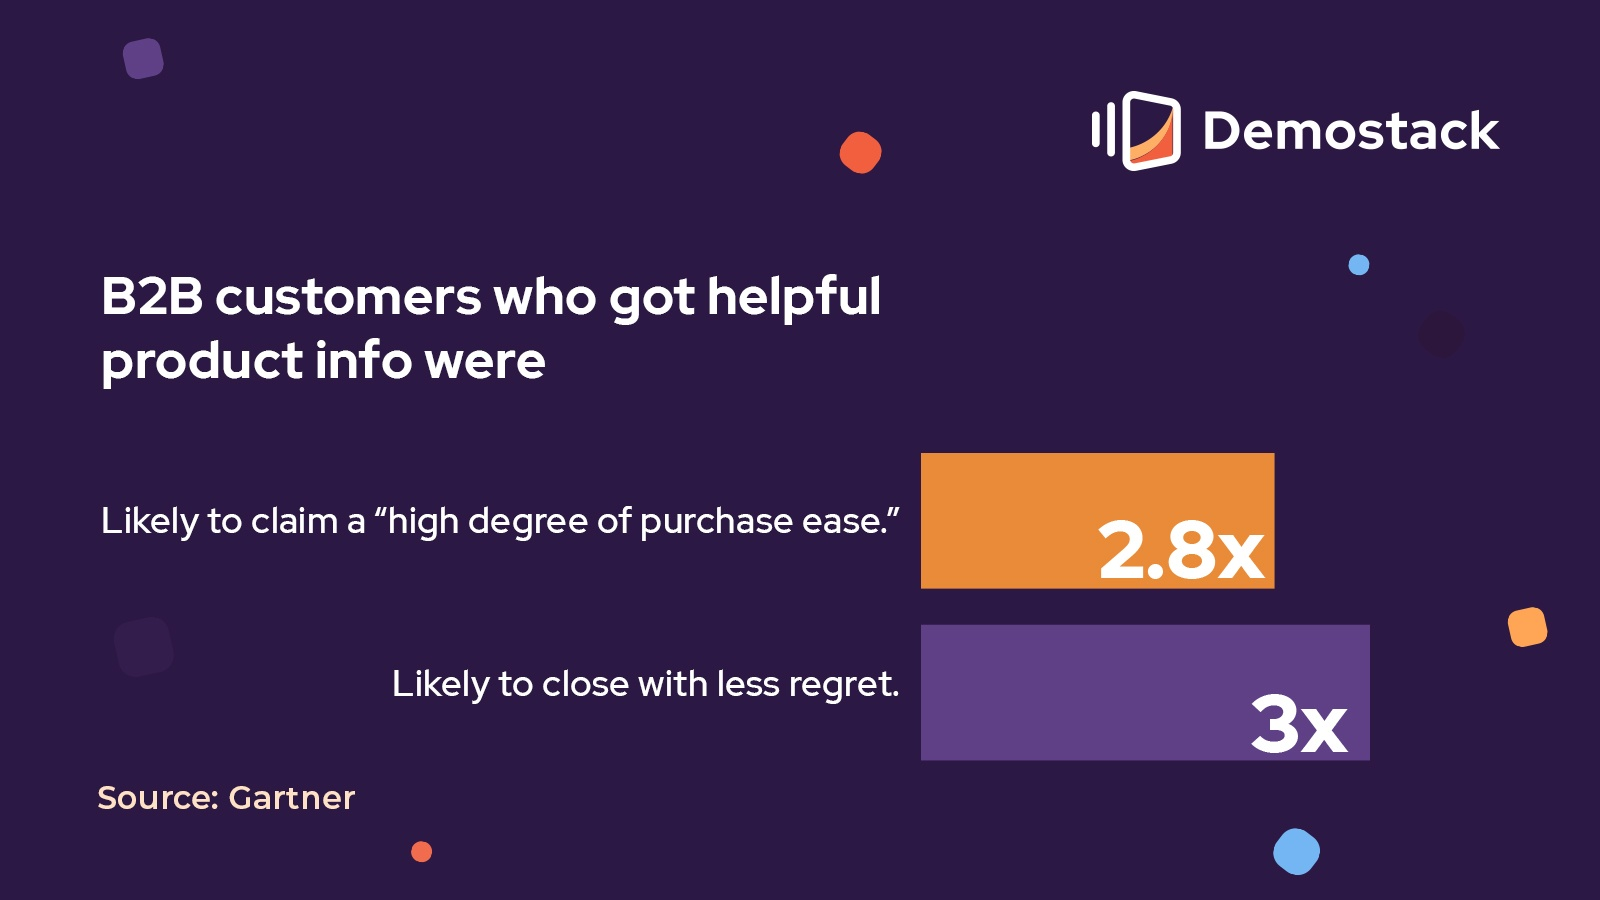 """Gartner's 2020 research shows that B2B customers who received helpful product info from sellers were 2.8x more likely to claim a """"high degree of purchase ease,"""" and 3x more likely to close with less regret."""